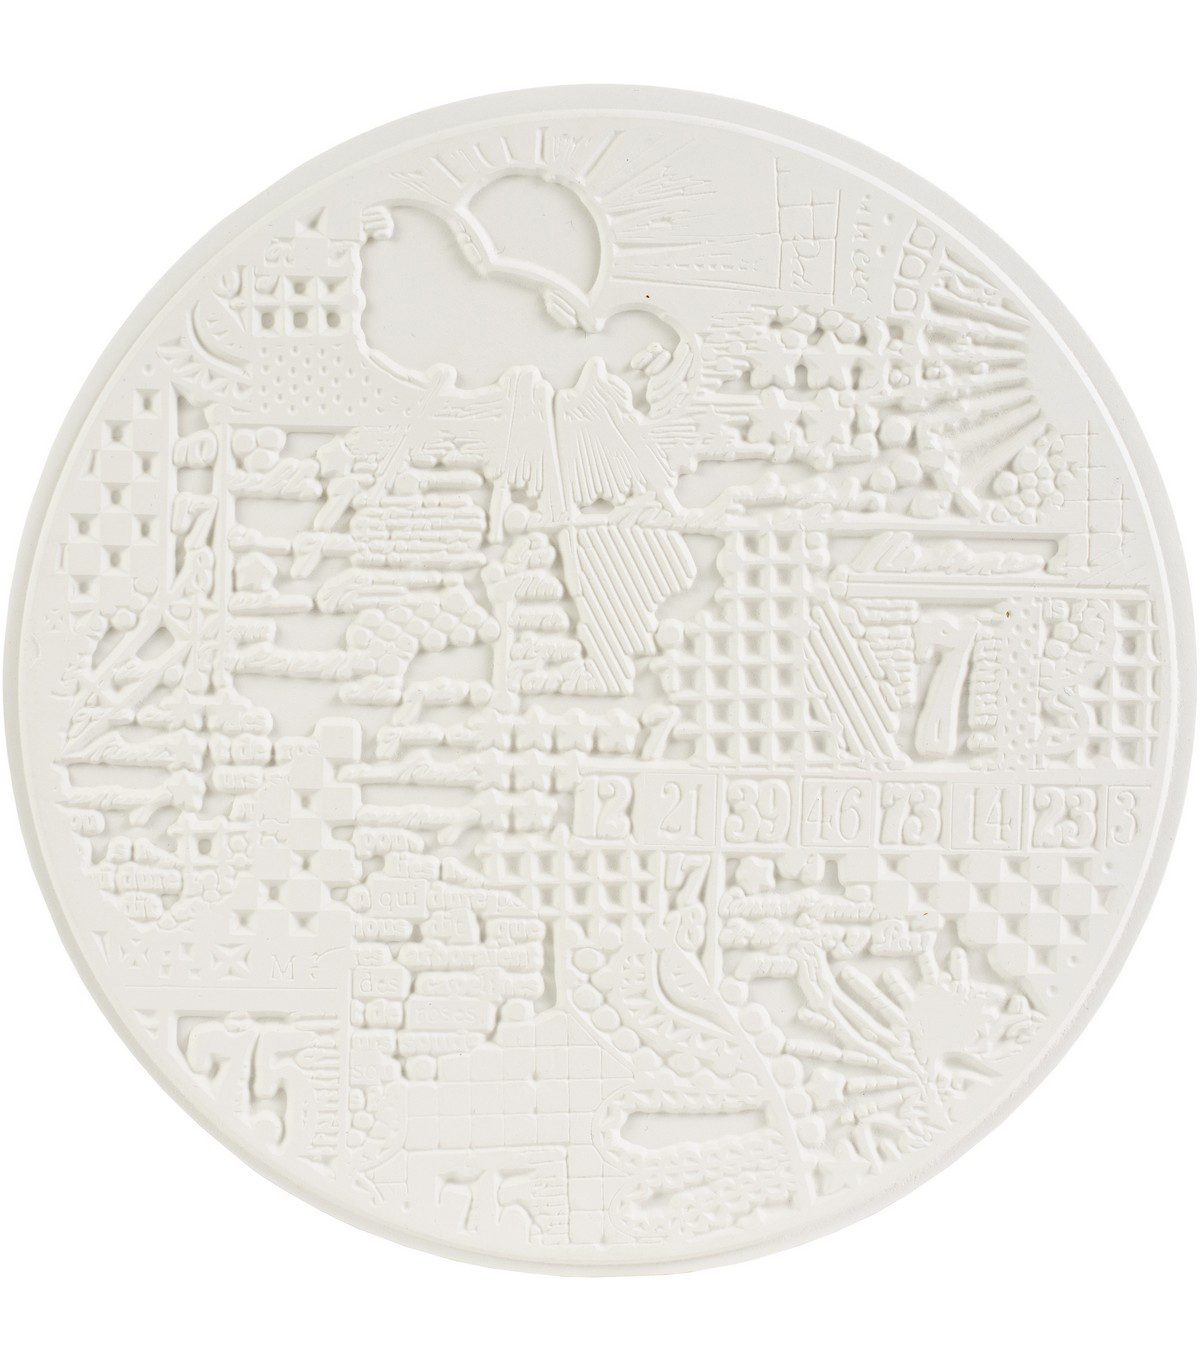 Carabelle Studio Art Printing Round Rubber Texture Plate-Big Bang